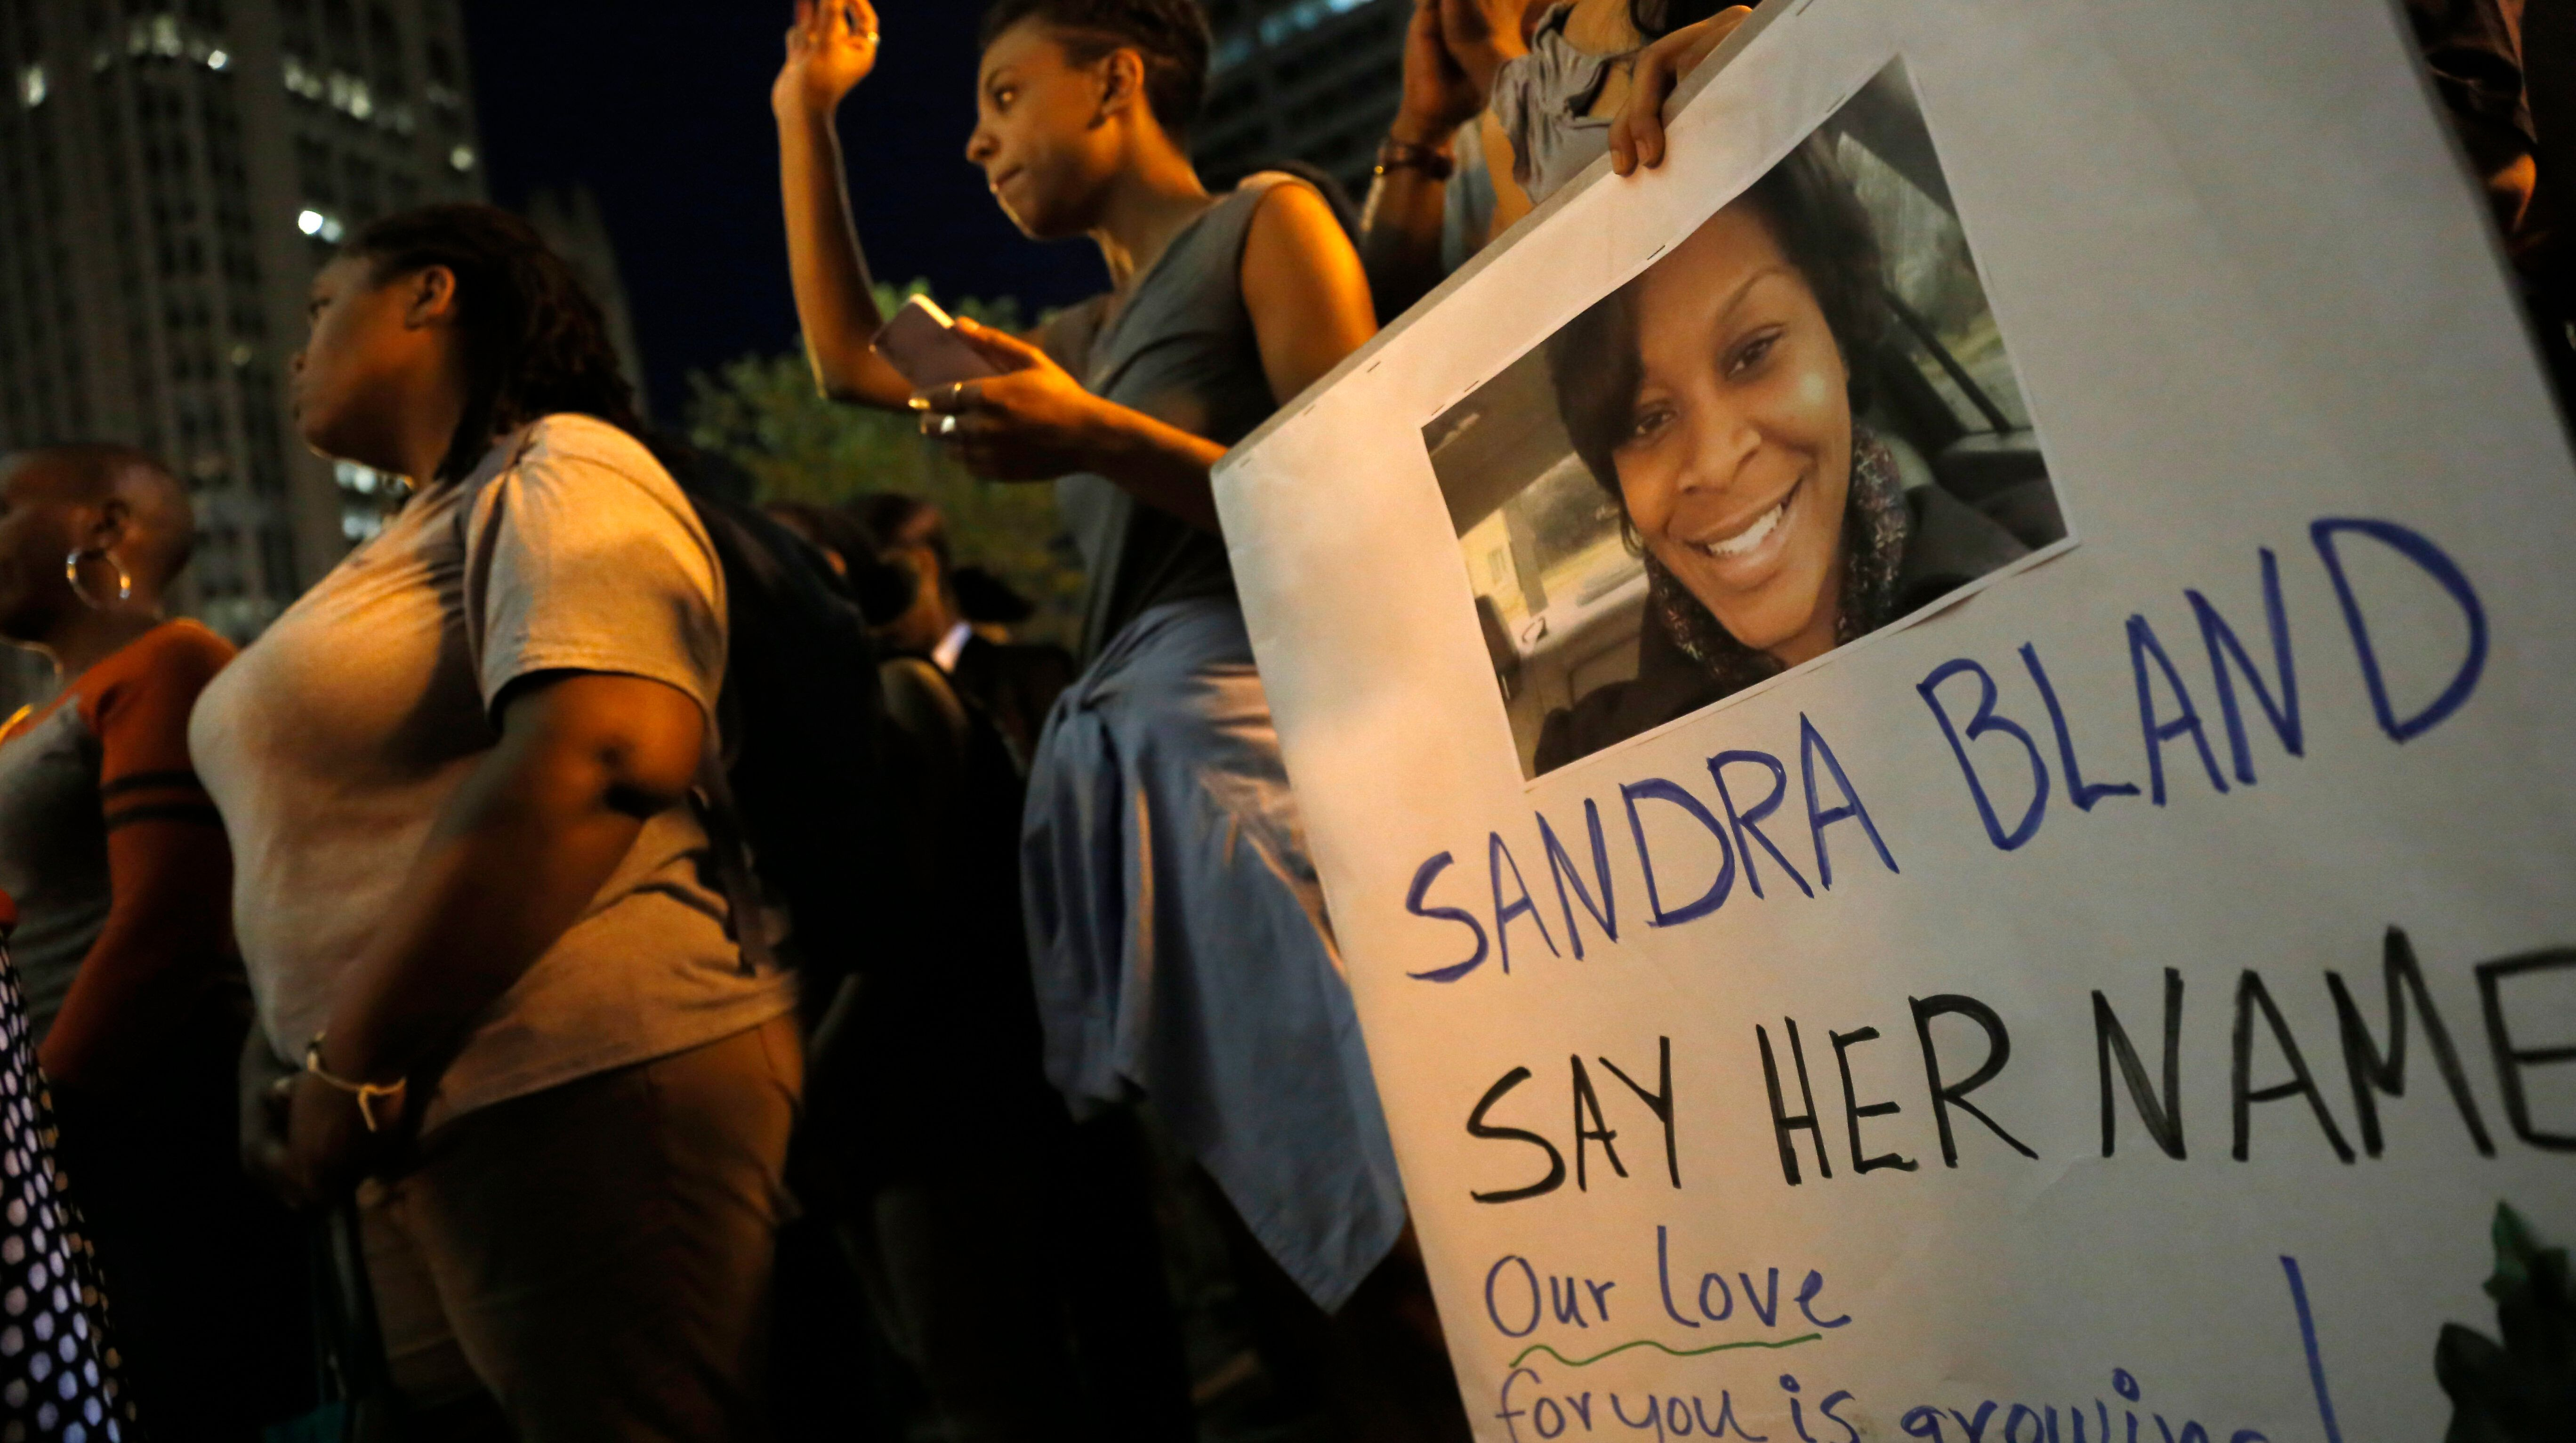 Bland was found hanged in a jail cell three days after she was arrested inPrairie View, Texas, during a traffic stop and charged with suspicion ofassaulting a public servant